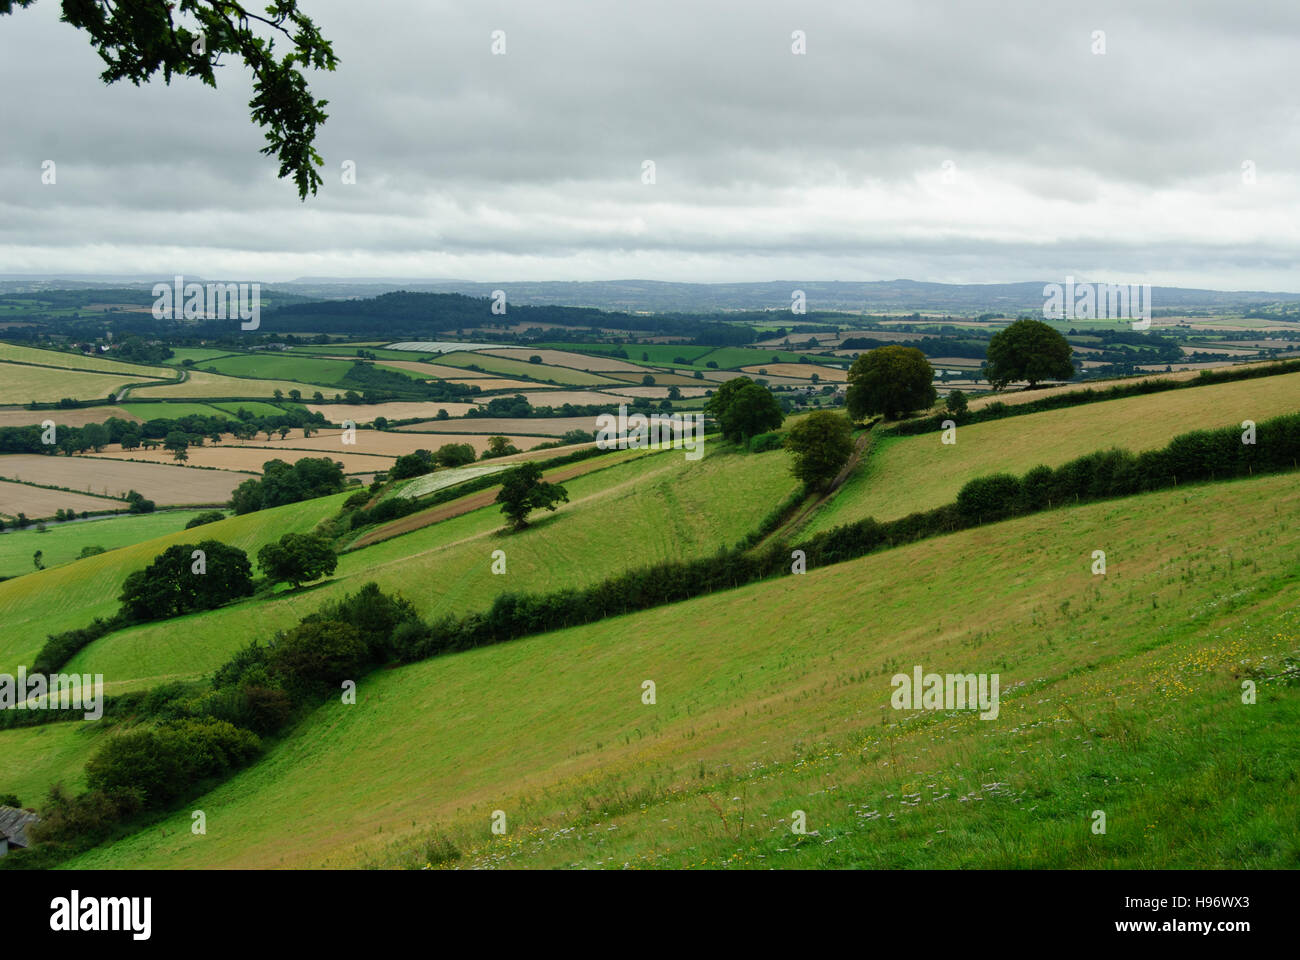 Typical English countryside landscape with hills, fields and hedgerows in Devon - Stock Image